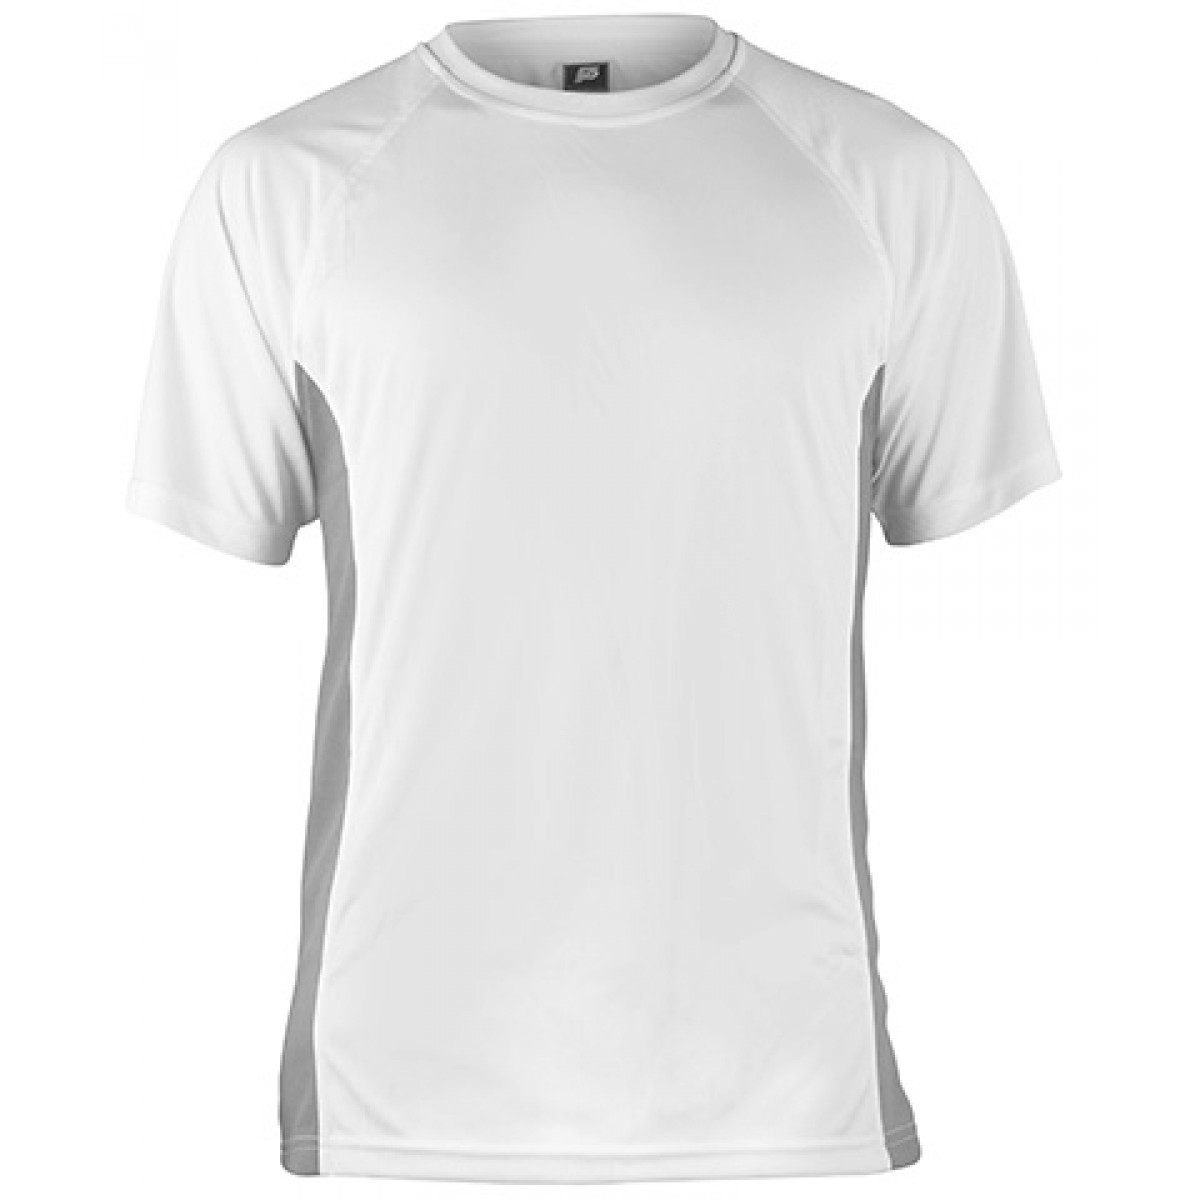 Short Sleeve Performance With Side Insert-White/Gray-XL